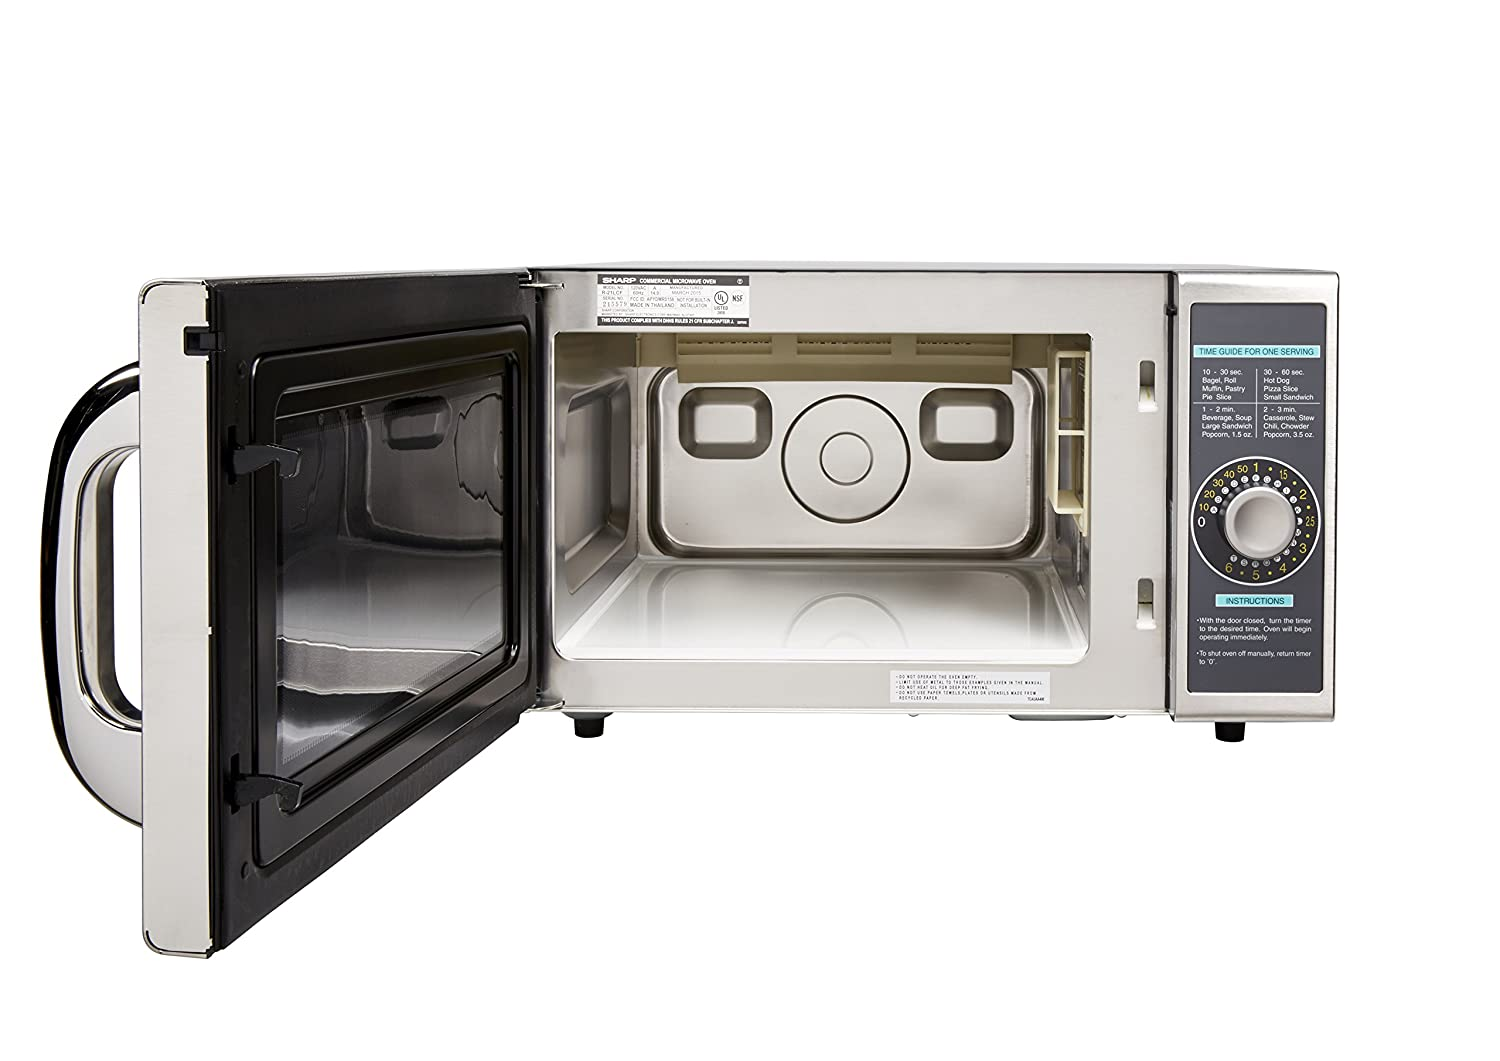 Best Wall Ovens for Home Use - Top Best Kitchen Wall Ovens Reviews